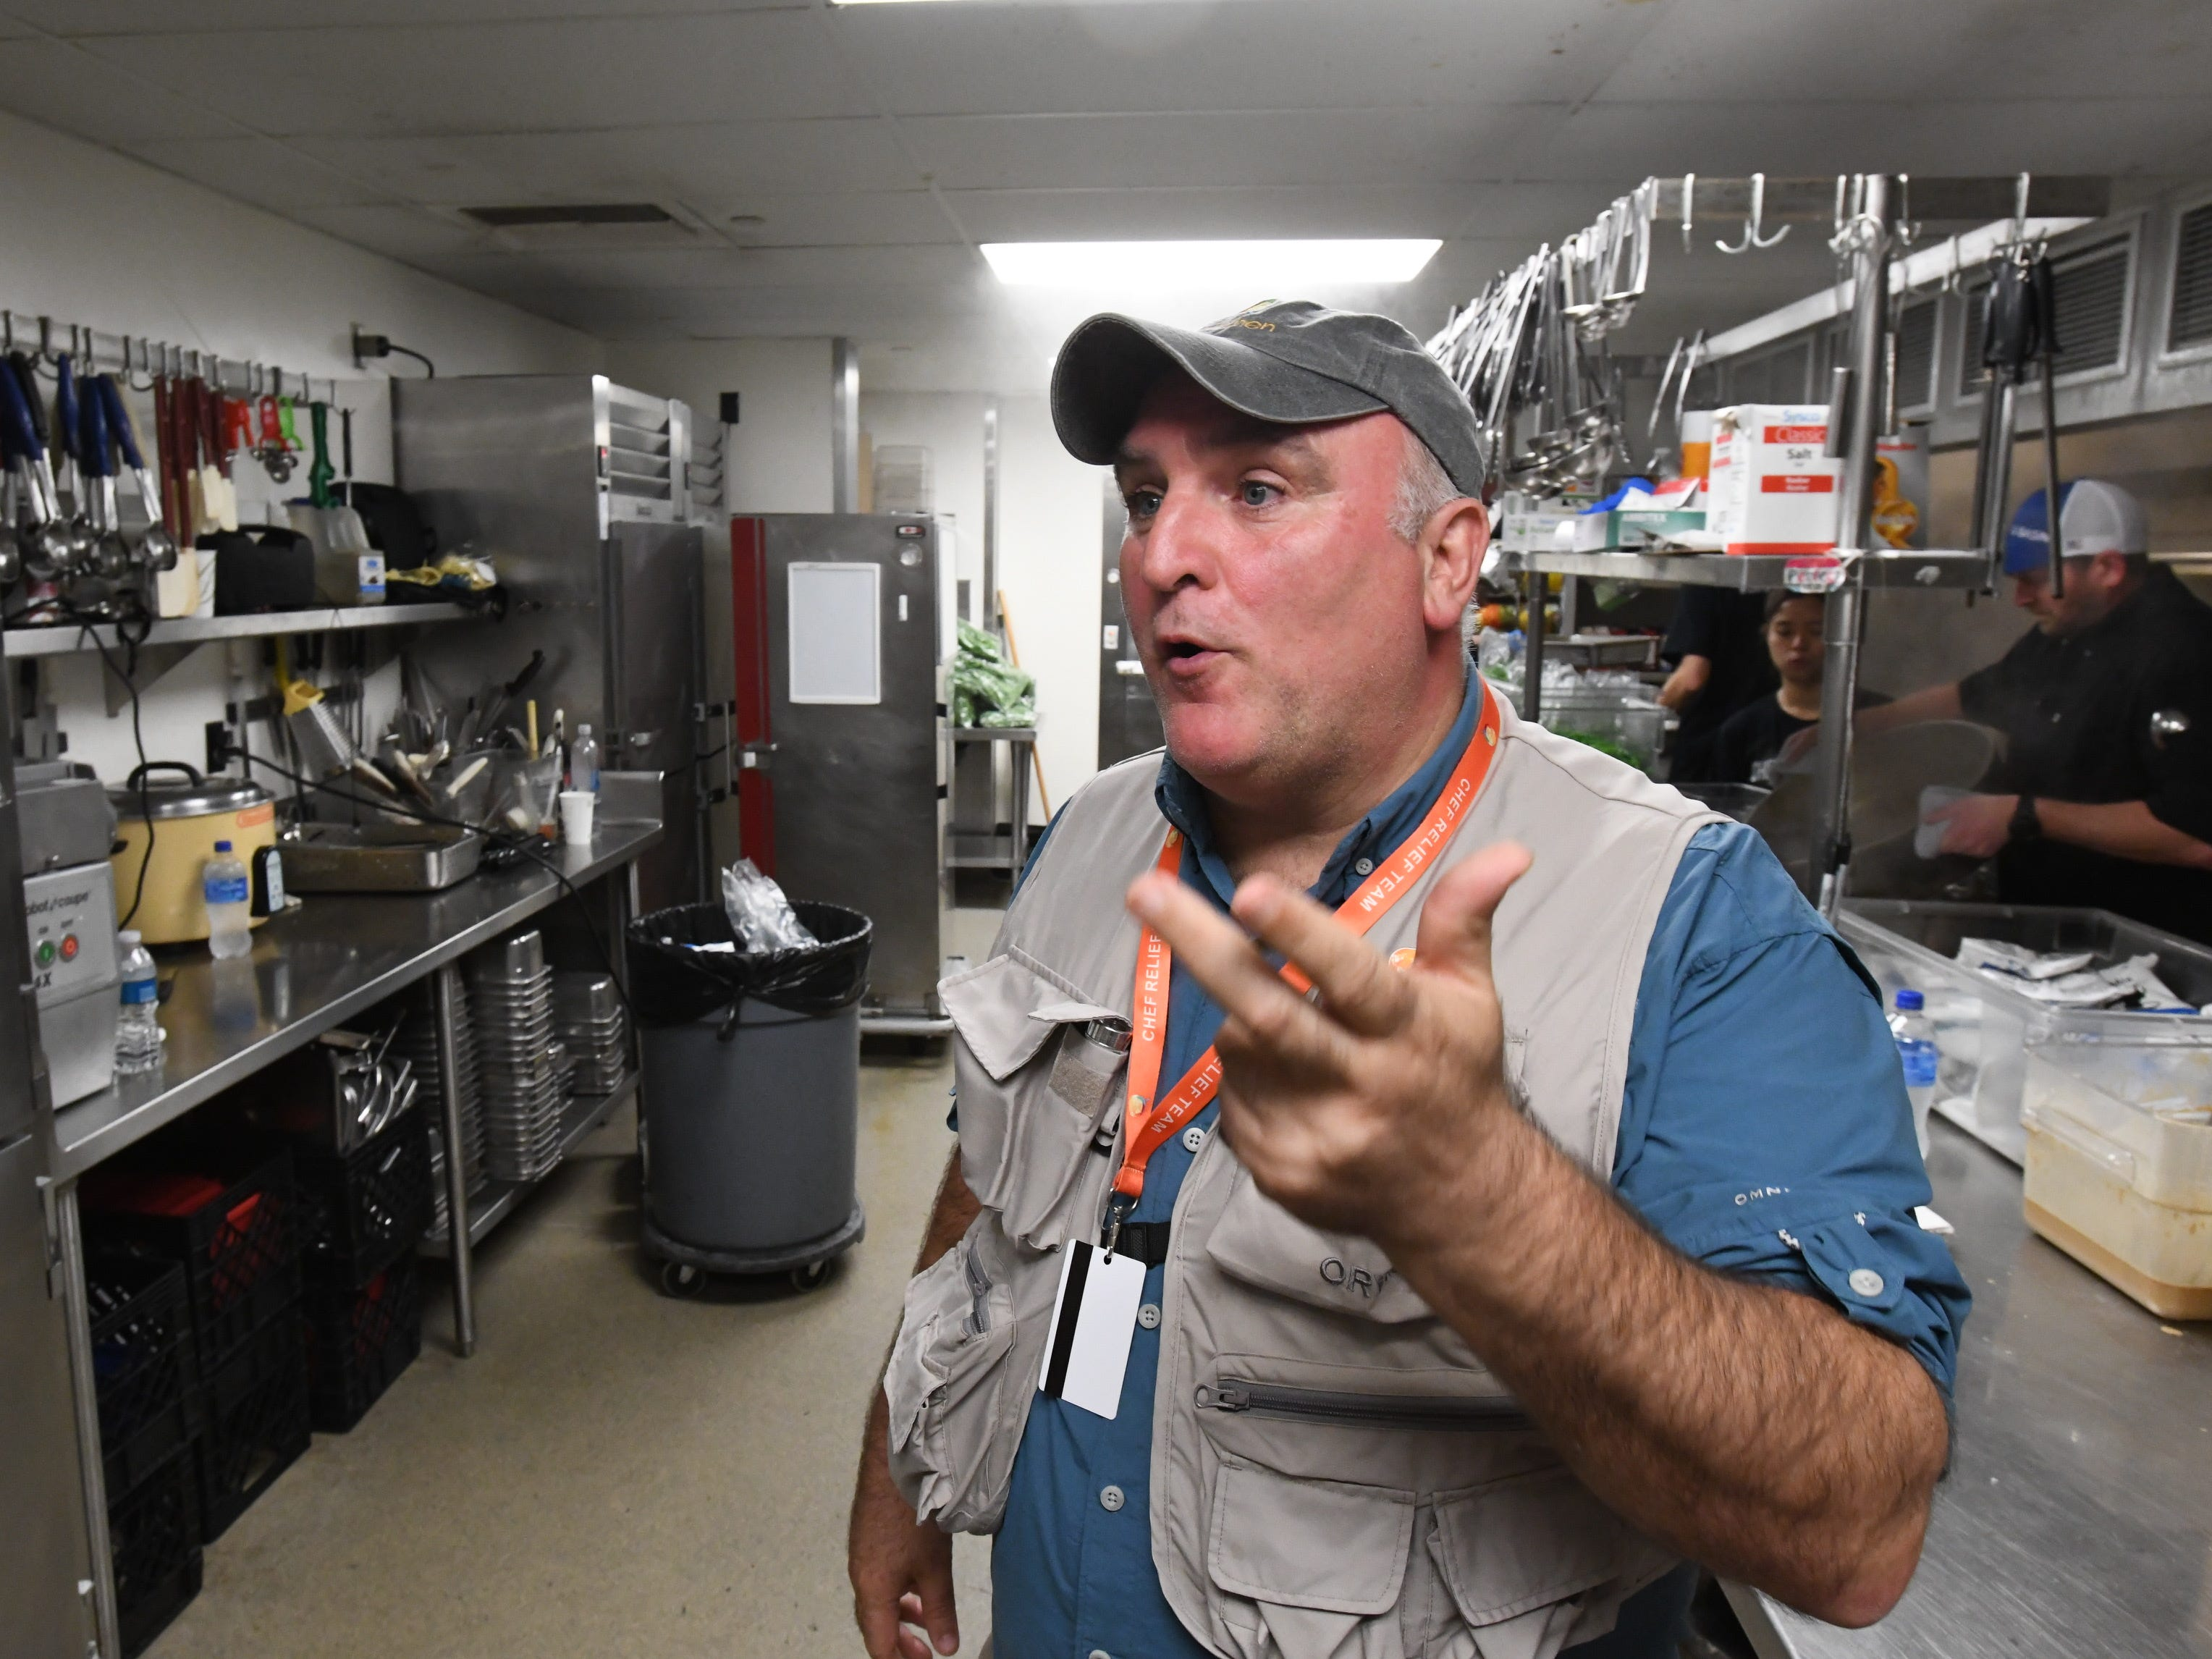 Chef Jose Andrés in the kitchen of the Bell Memorial Union Auditorium on the Chico State University campus in Chico, Calif., on Nov. 22, 2018. The renowned chef, who was still mourning the recent death of his father, Mariano Andrés, was among hundreds of volunteers cooking Thanksgiving dinner for evacuees from the Camp Fire which devastated the nearby town of Paradise, Calif.